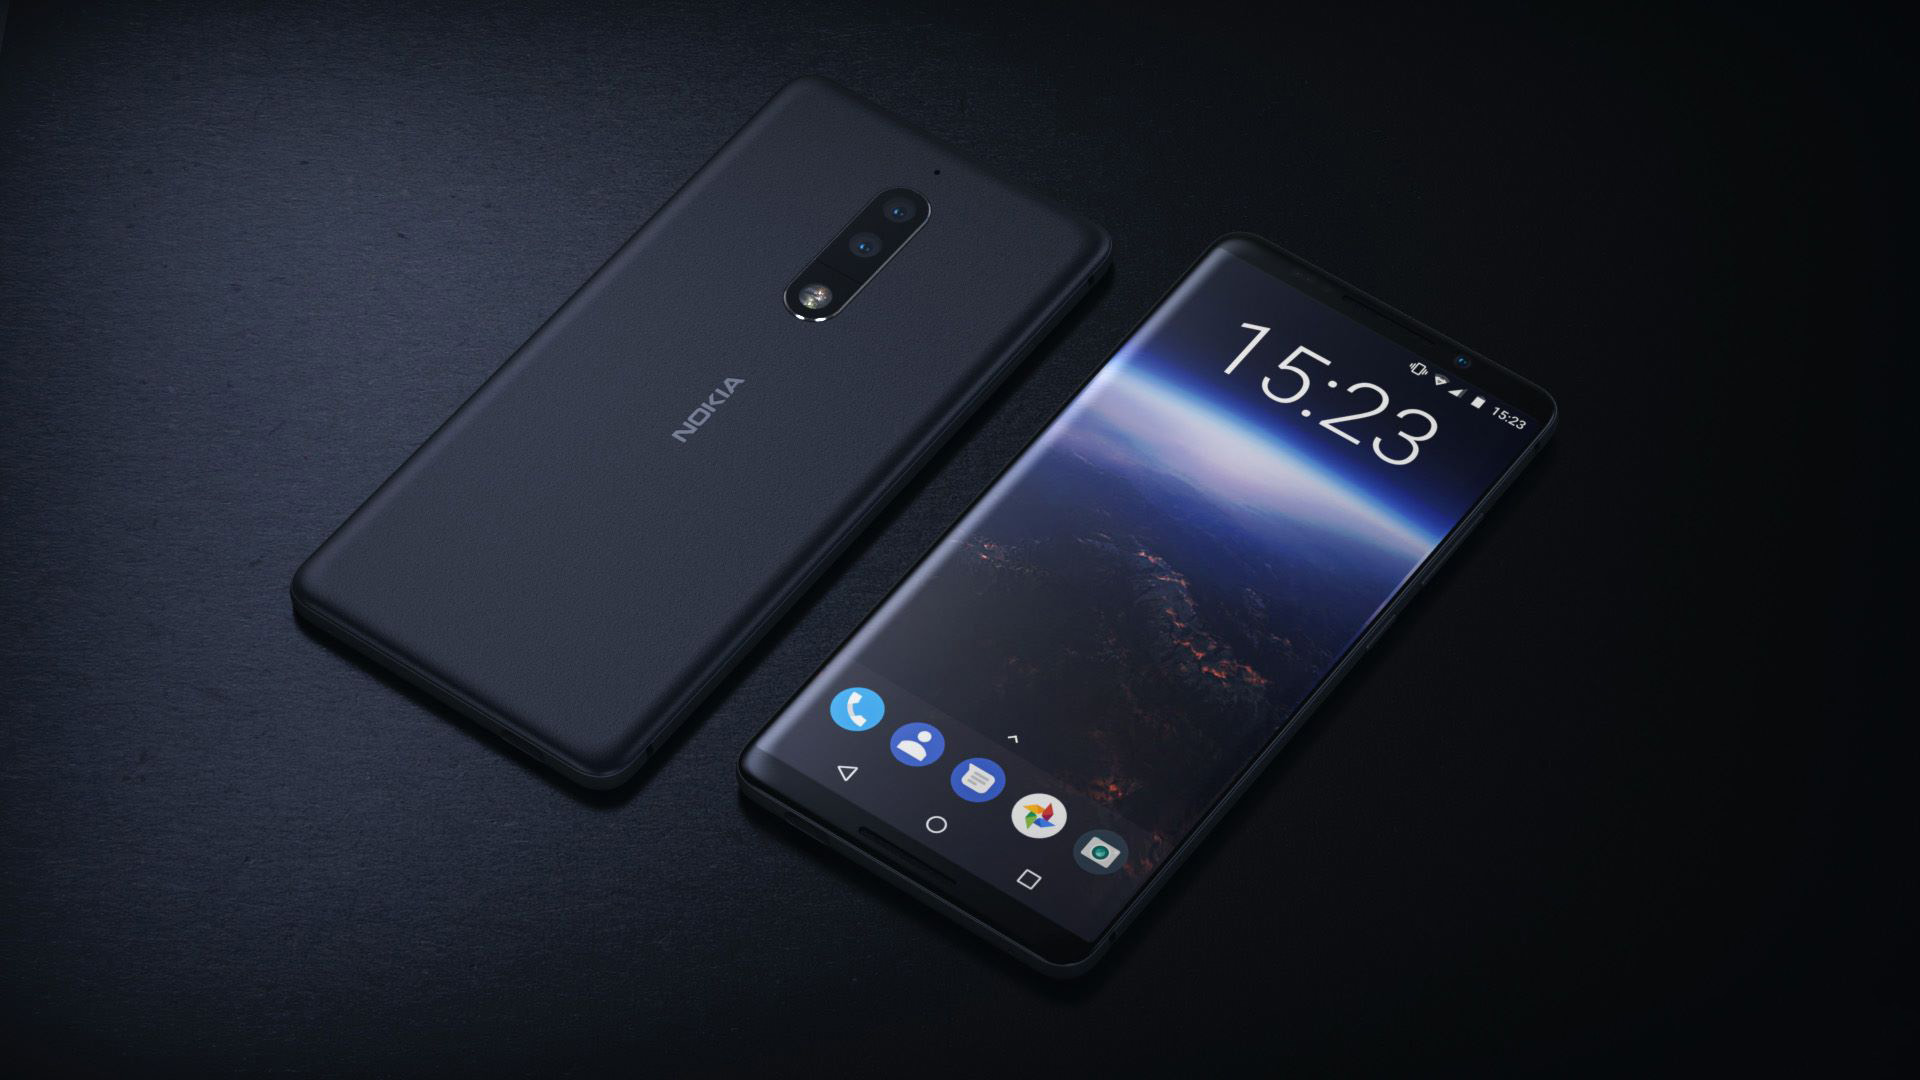 Nokia 5.1 Plus launching in India on September 24th as Flipkart